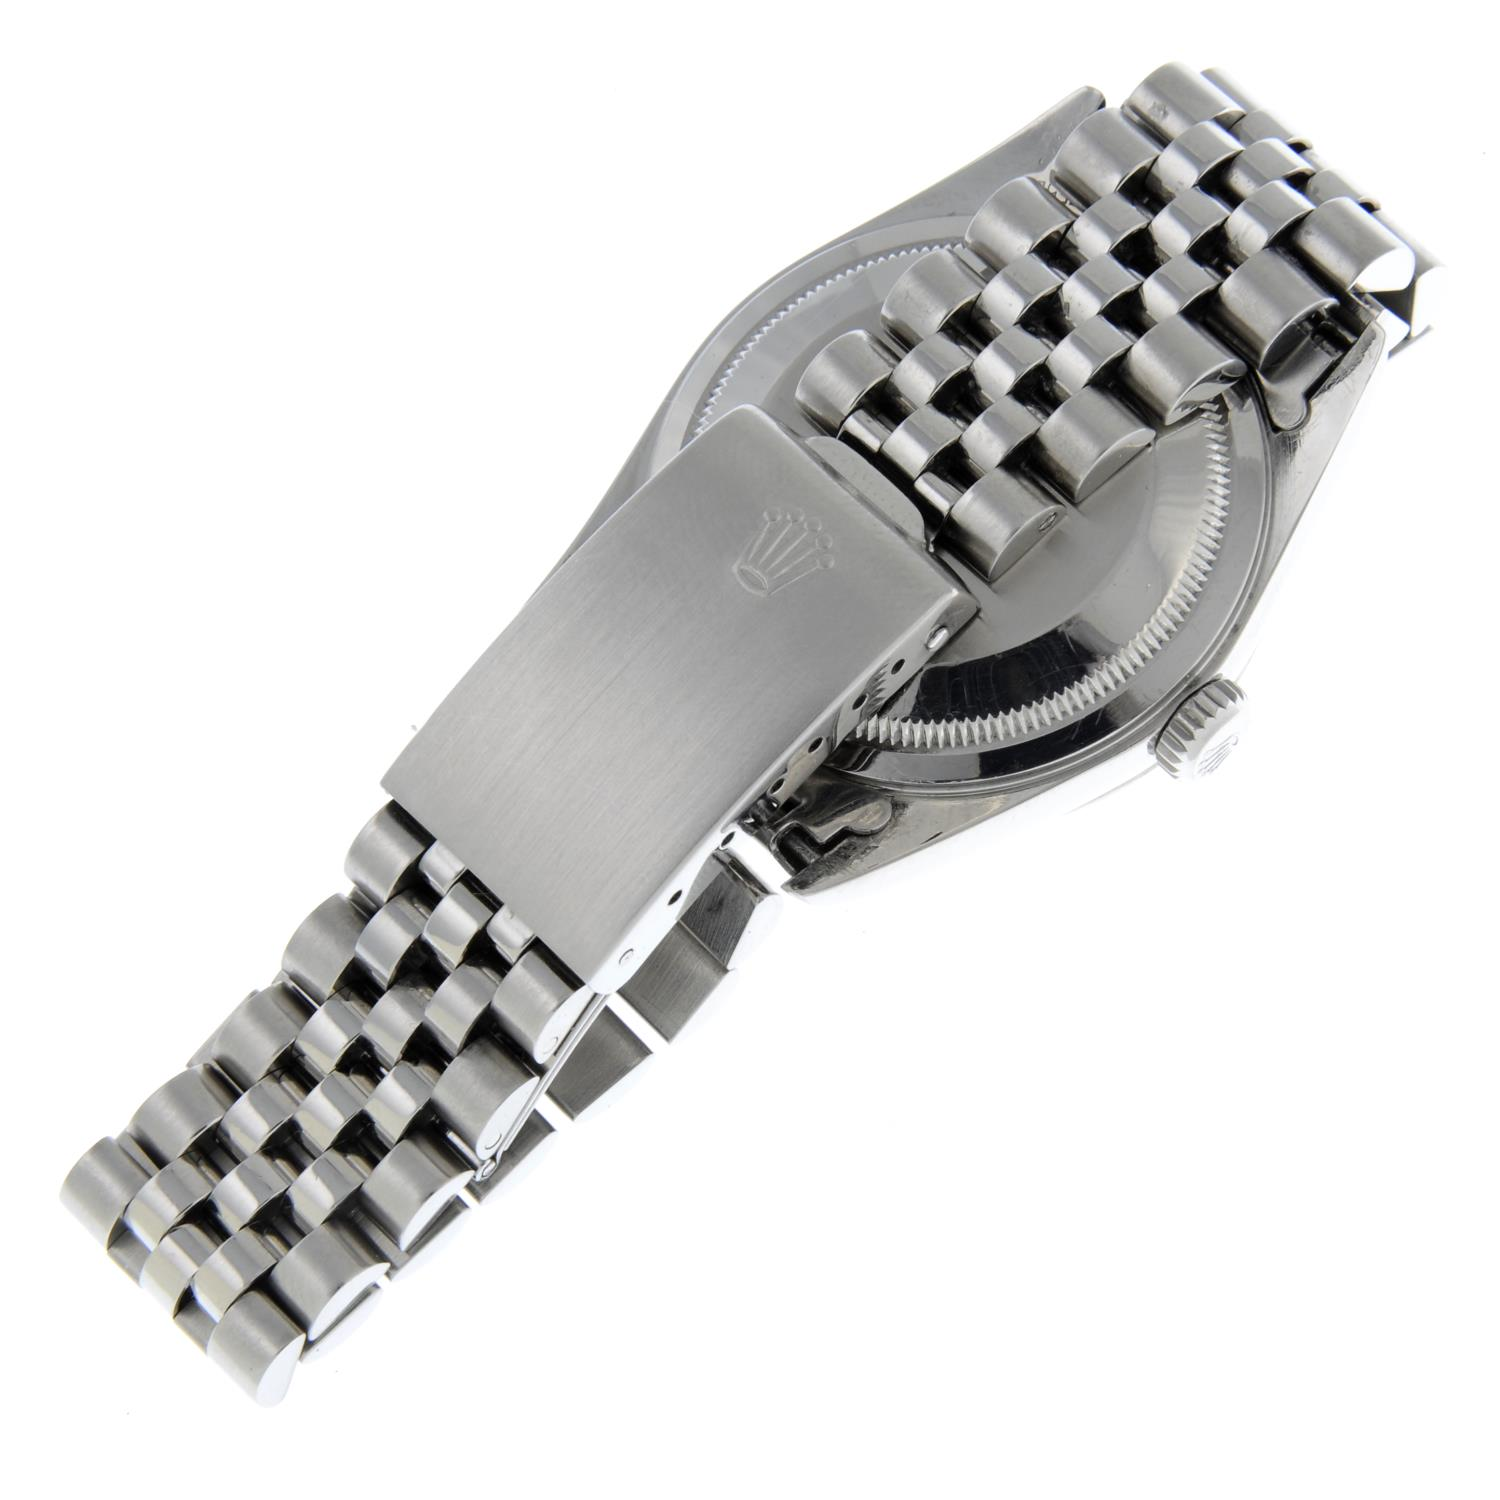 ROLEX - an Oyster Perpetual Datejust bracelet watch. - Image 2 of 6